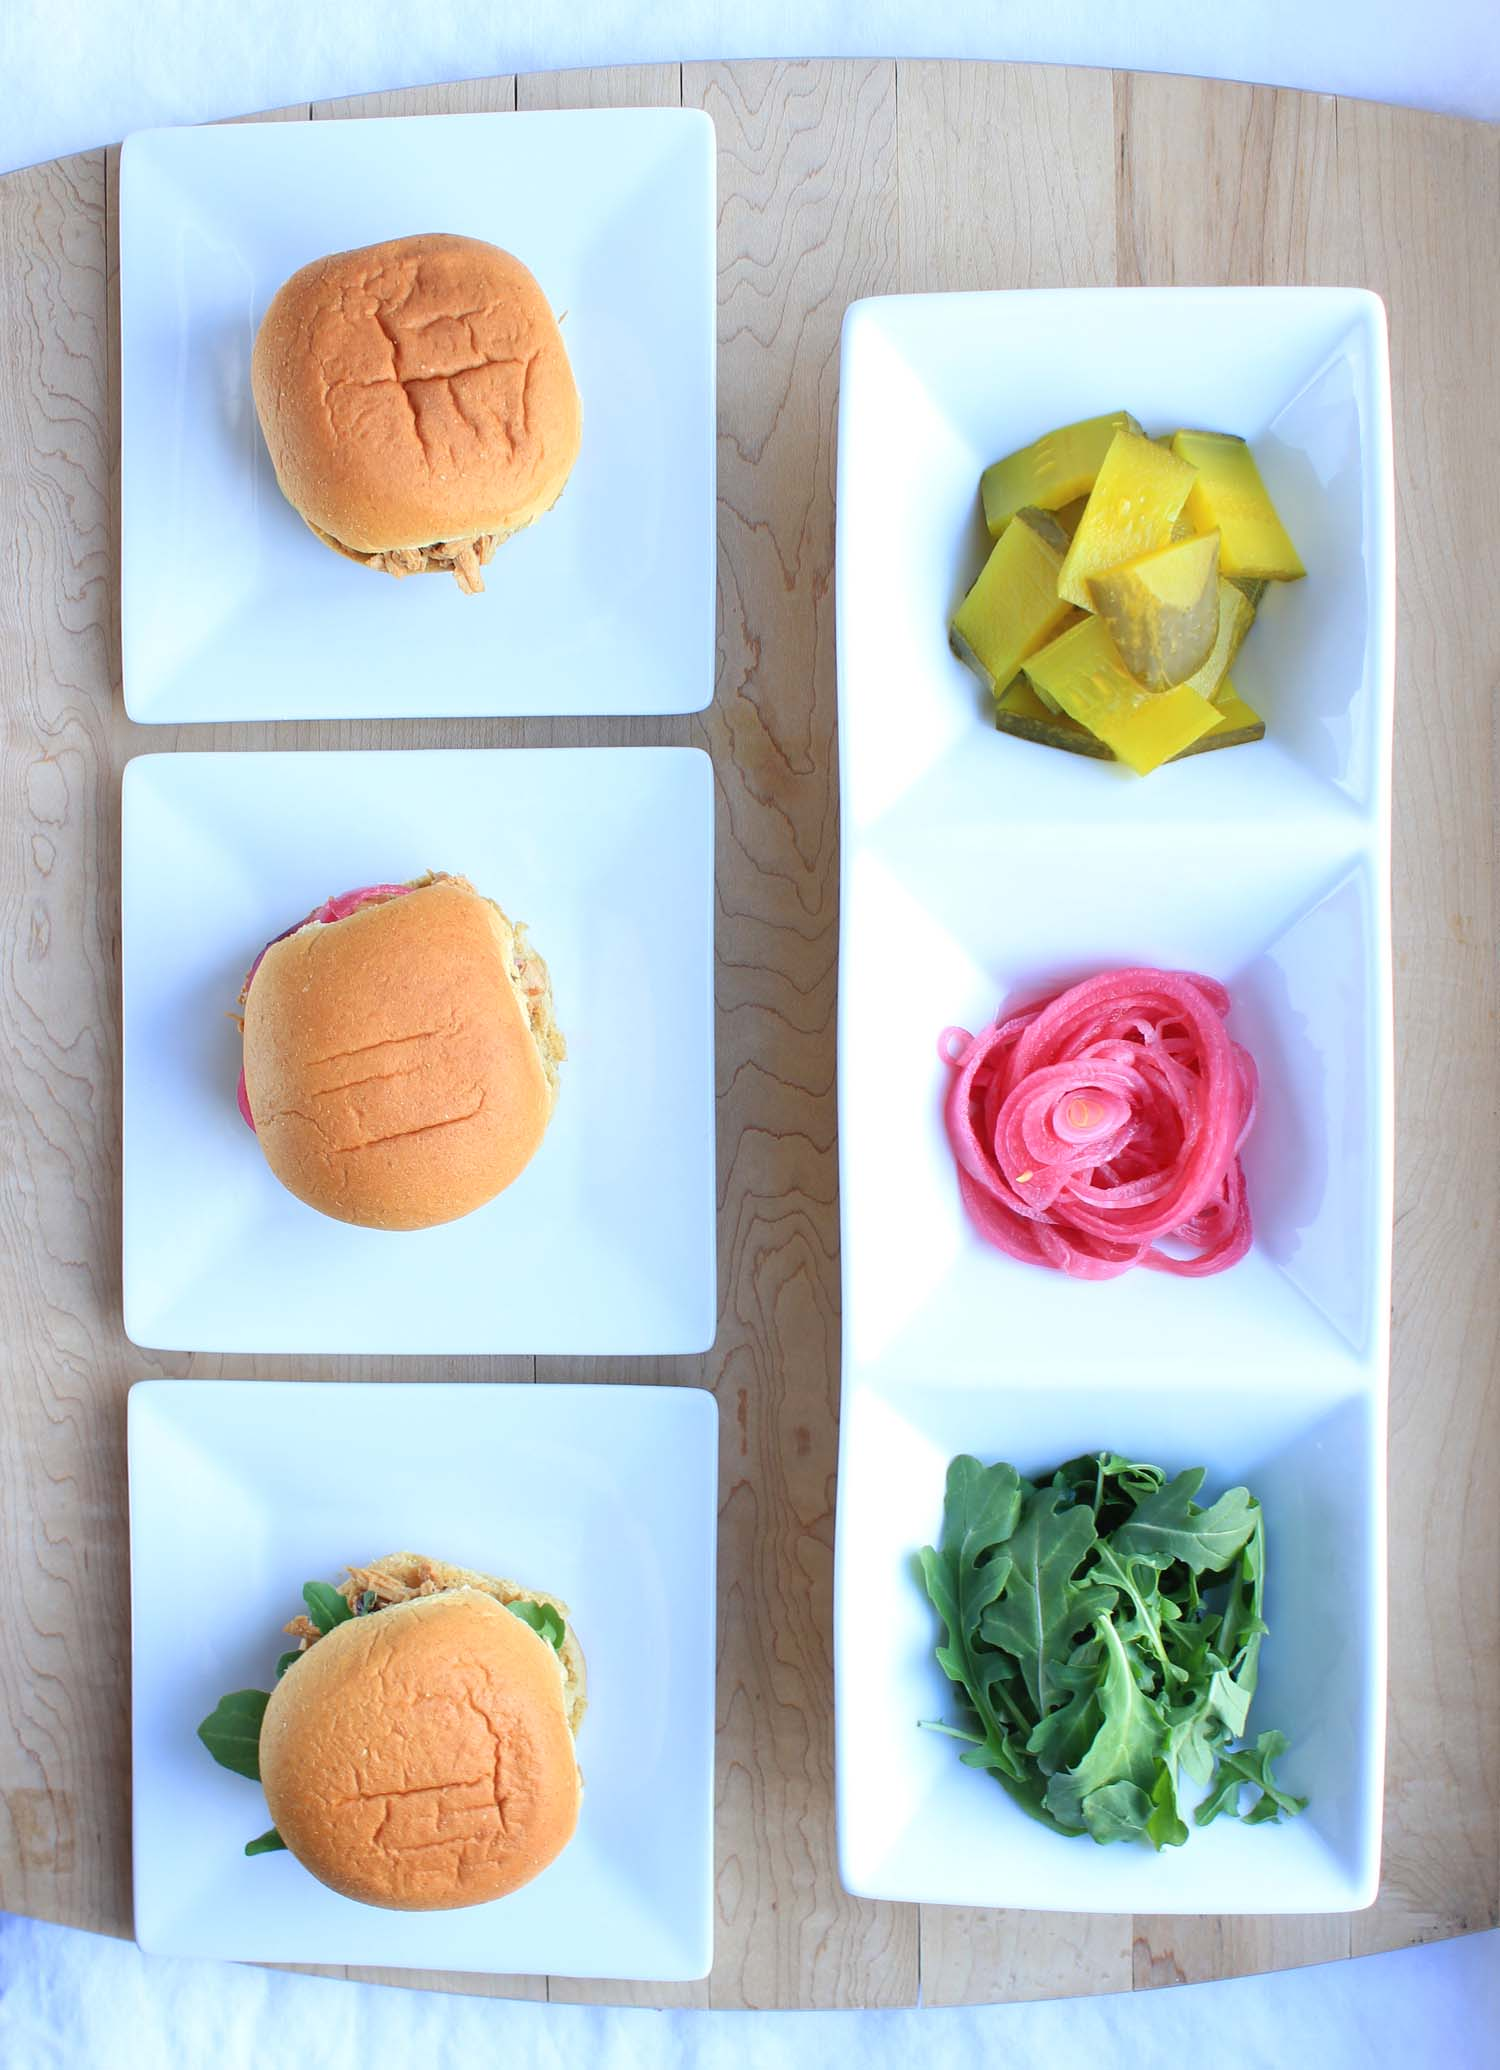 Black Pepper Molasses Pulled Chicken Sliders  | Image:  Laura Messersmith